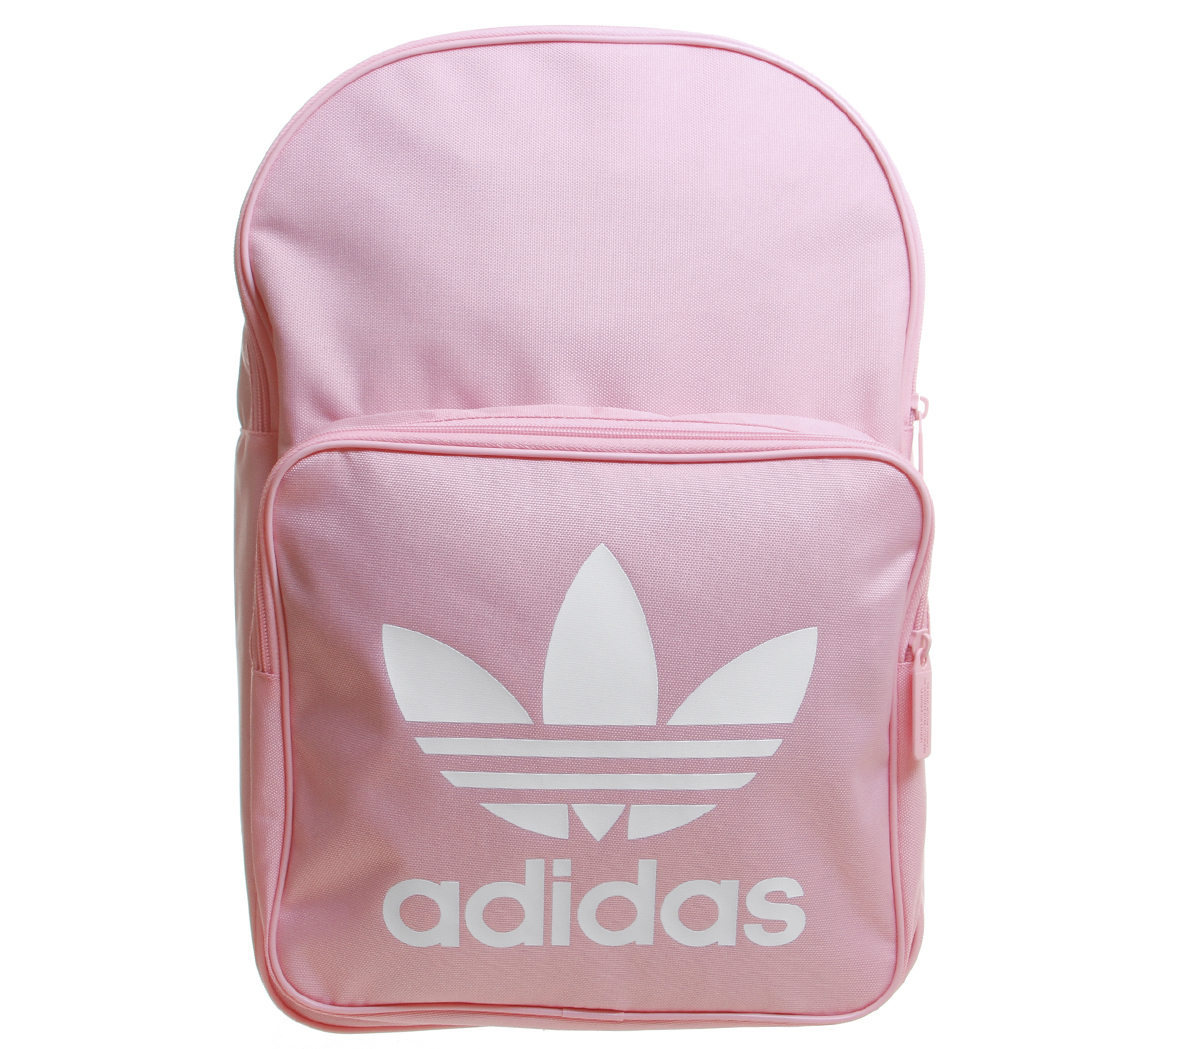 0c638ed39bc4 Sentinel Accessories Adidas Classic Trefoil Backpacks Light Pink Accessories